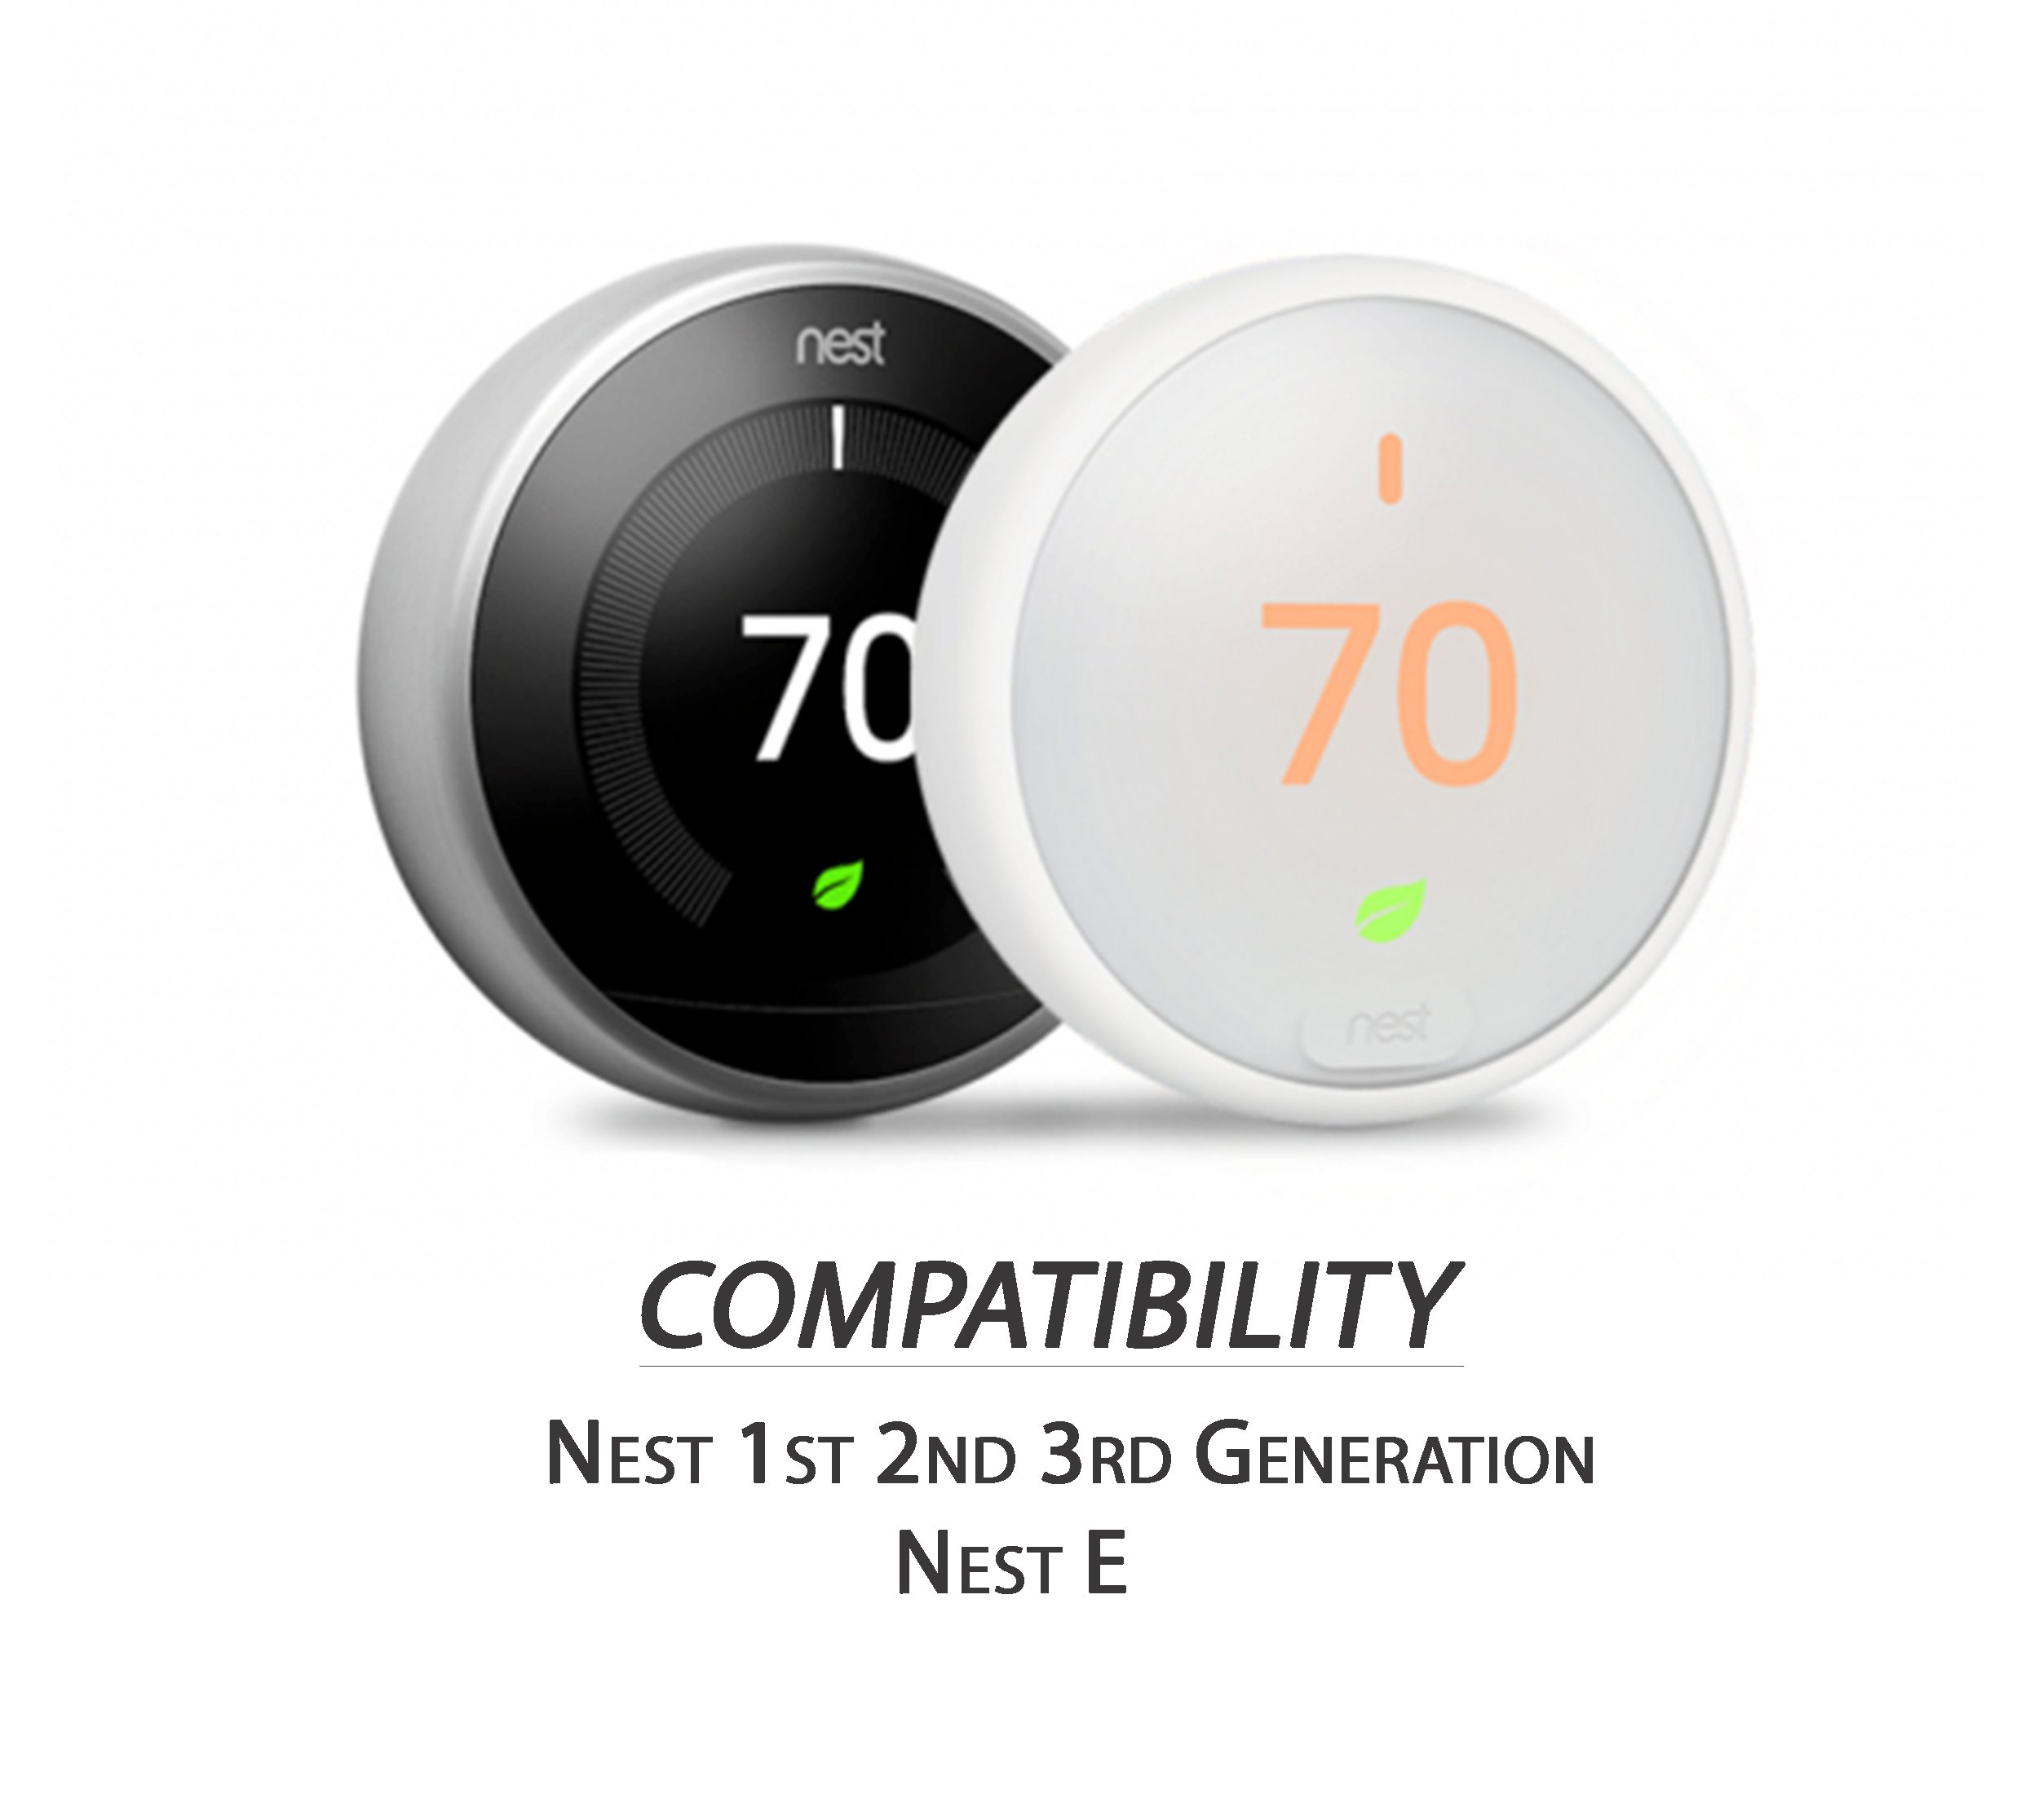 Nest Thermostat Wall Plate Cover (Solid Bamboo - Square - Glossy Finish) for Nest Learning 1st 2nd 3rd Generation and E by IE Works (Image #3)